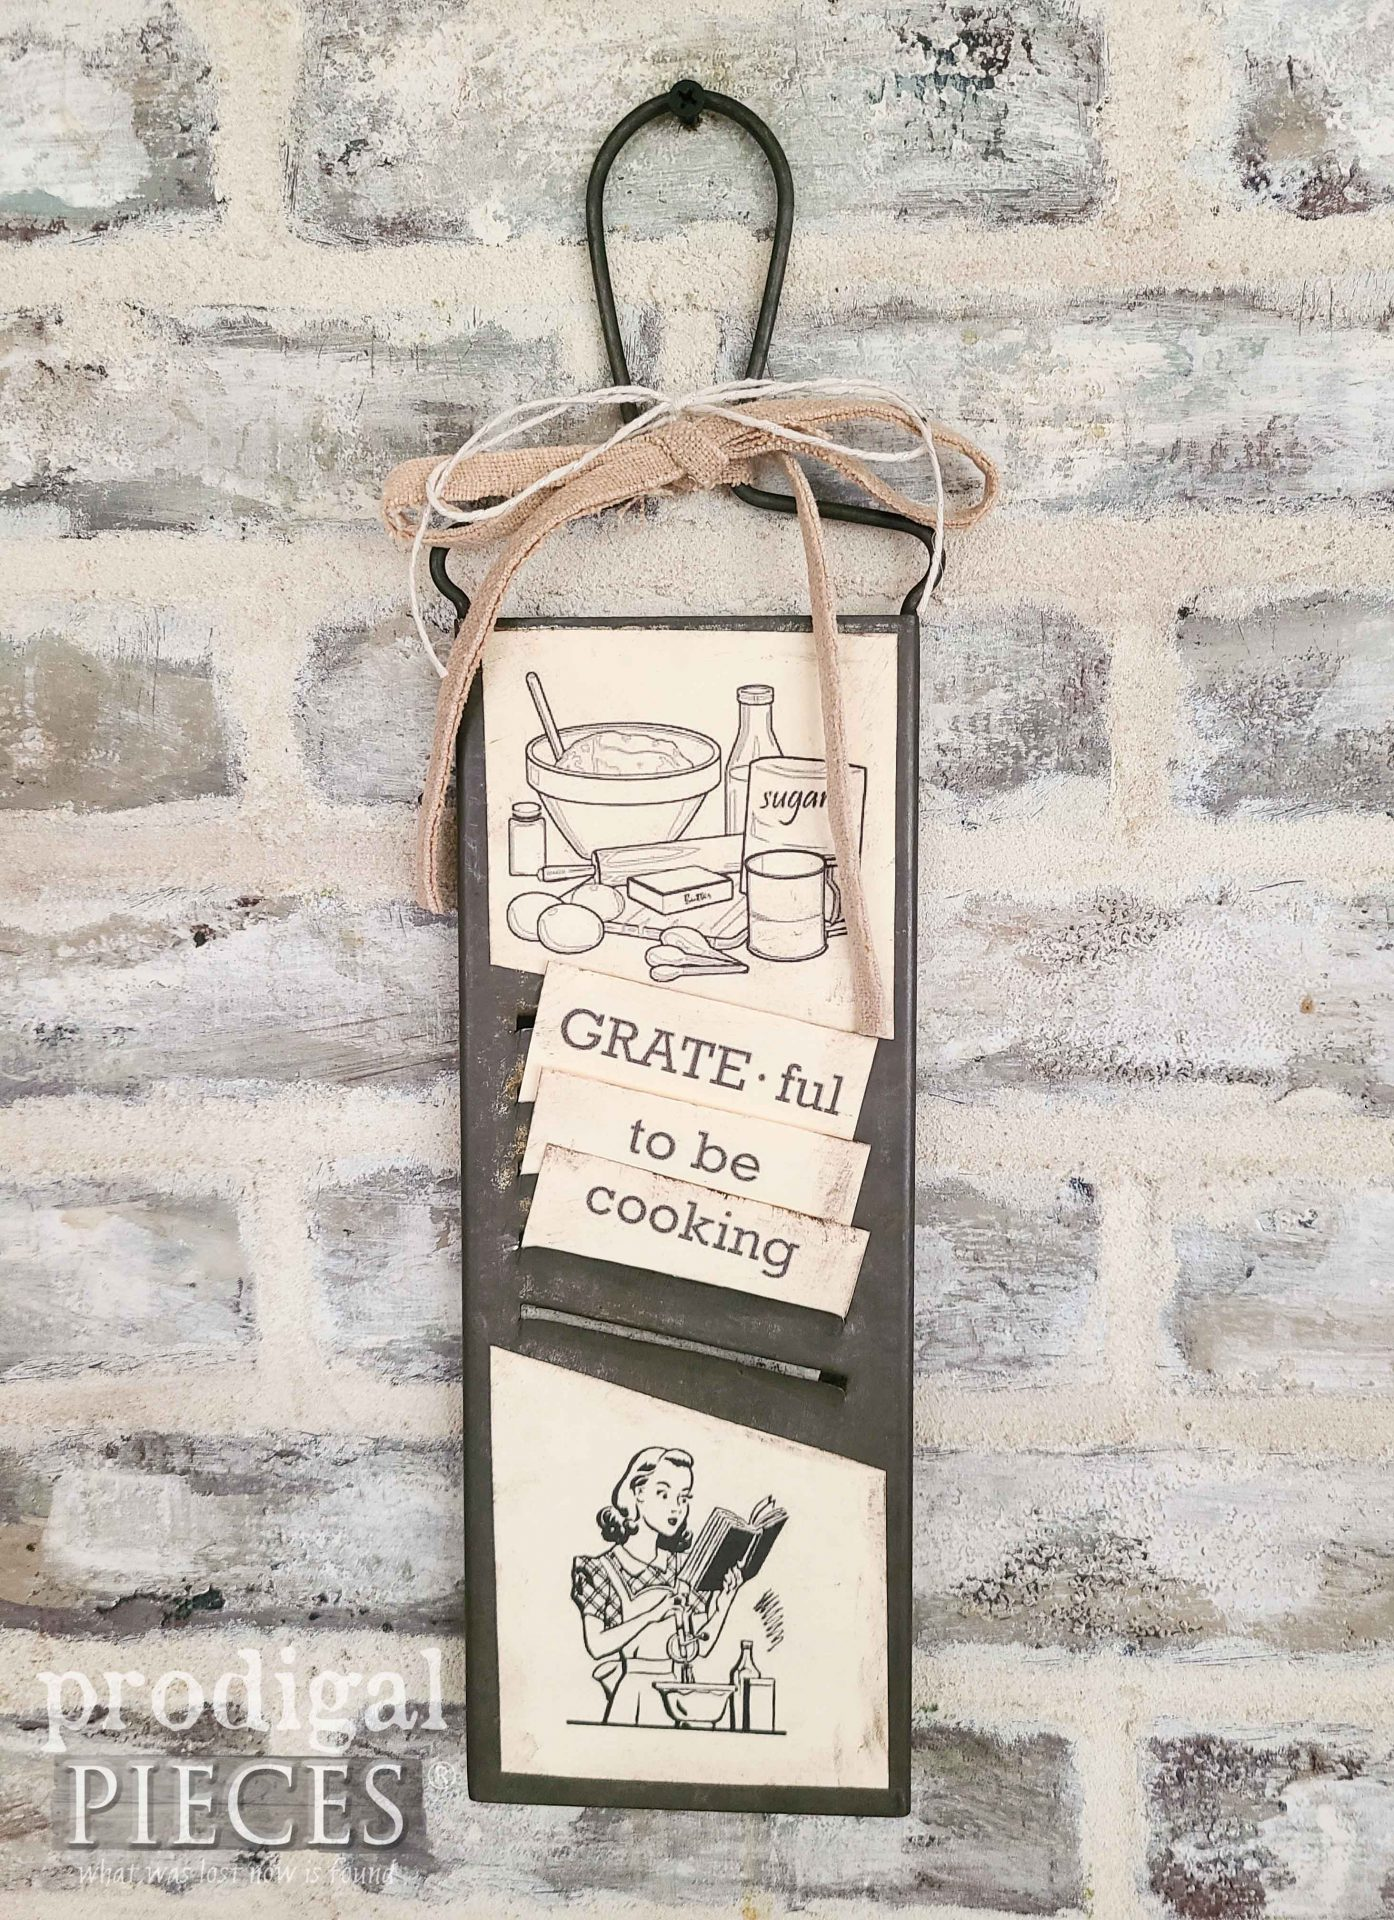 Upcycled Antique Grater for Kitchen Decor by Larissa of Prodigal Pieces   prodigalpieces.com #prodigalpieces #farmhouse #upcycled #home